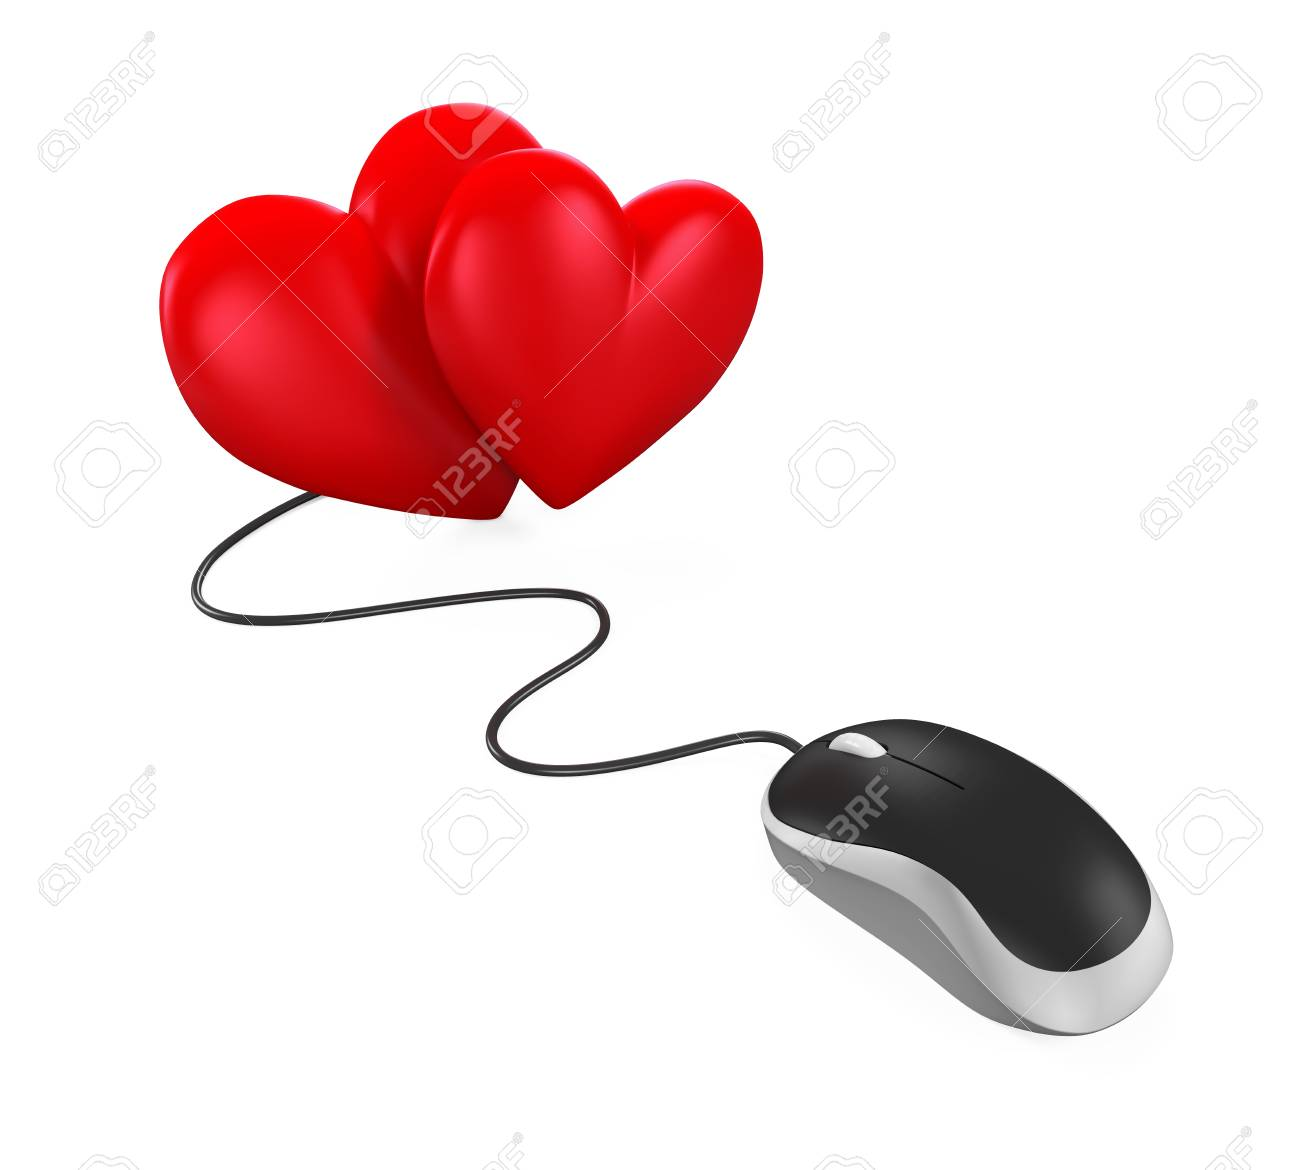 f09ba8f4463 Heart Shaped and Computer Mouse Stock Photo - 67255818